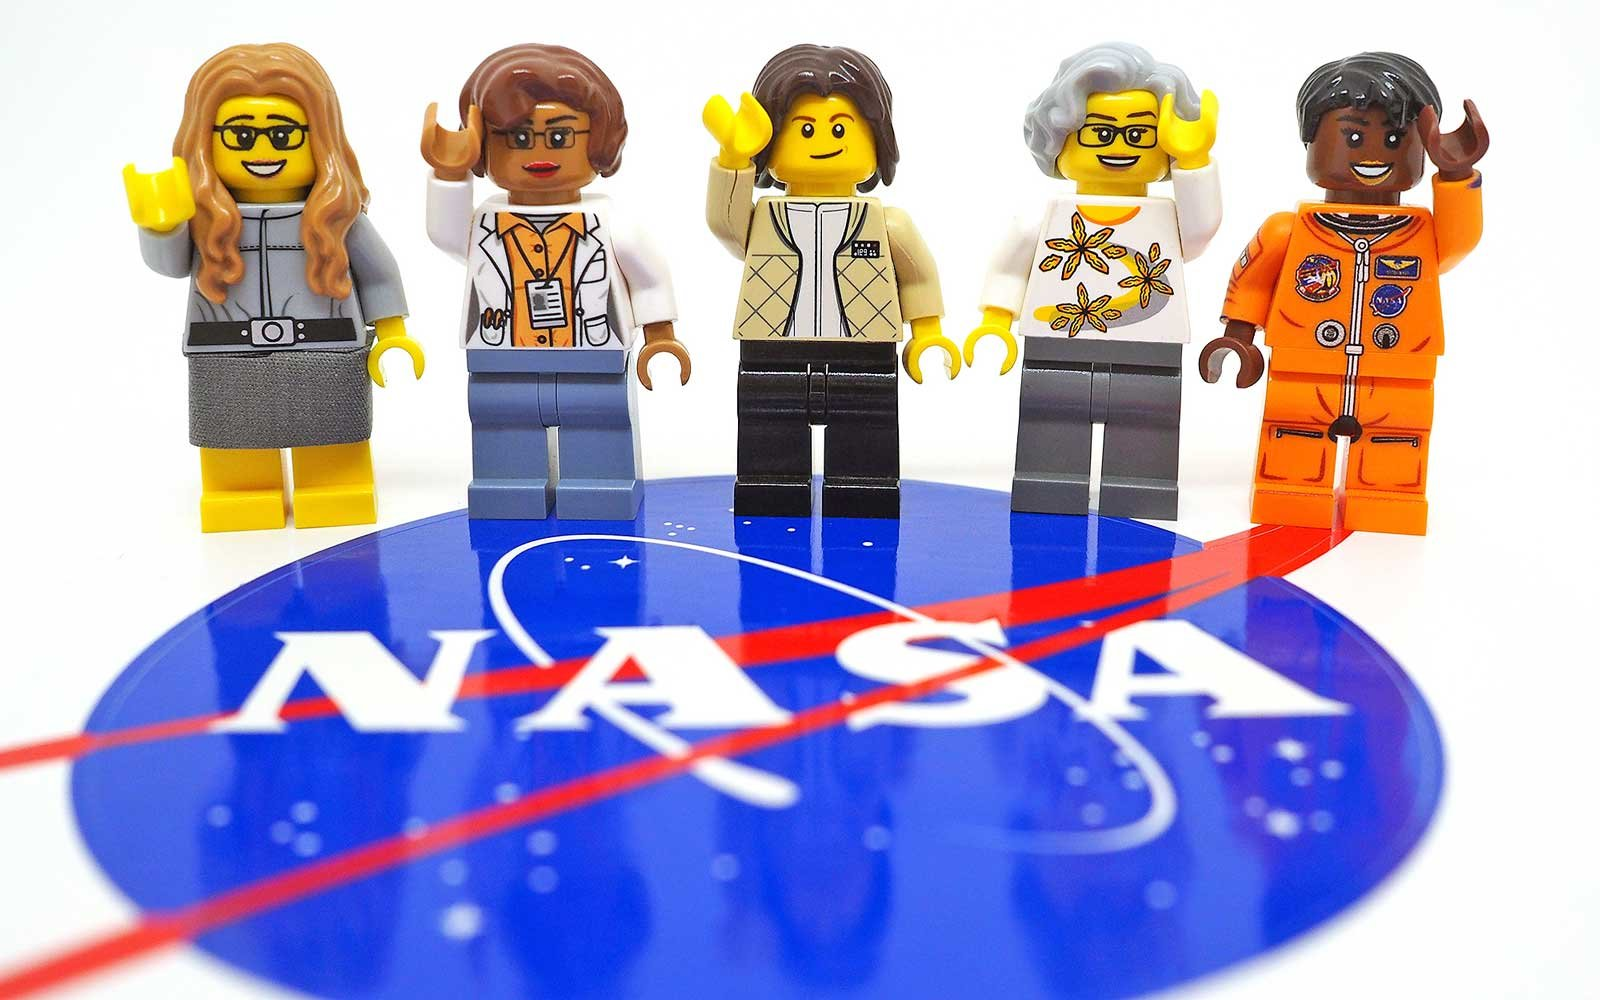 Lego Is Going to Sell a Women in NASA Set | Travel + Leisure